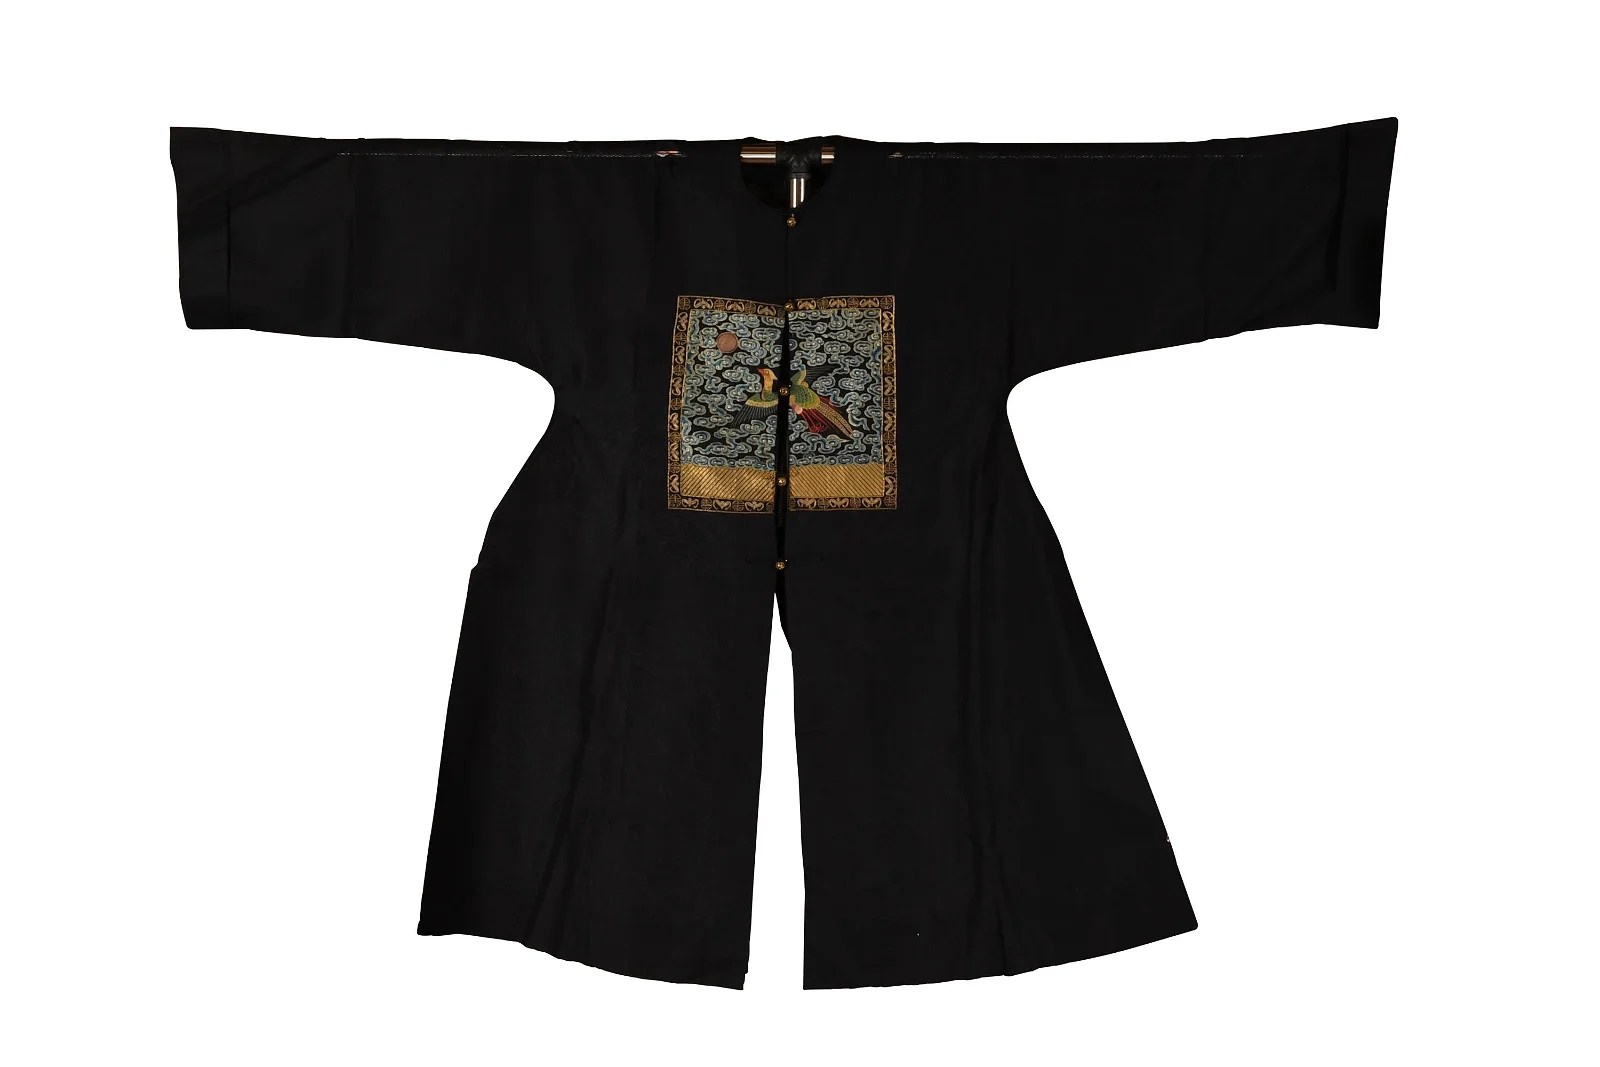 Chinese Black Ground Official's Robe, 19th Century